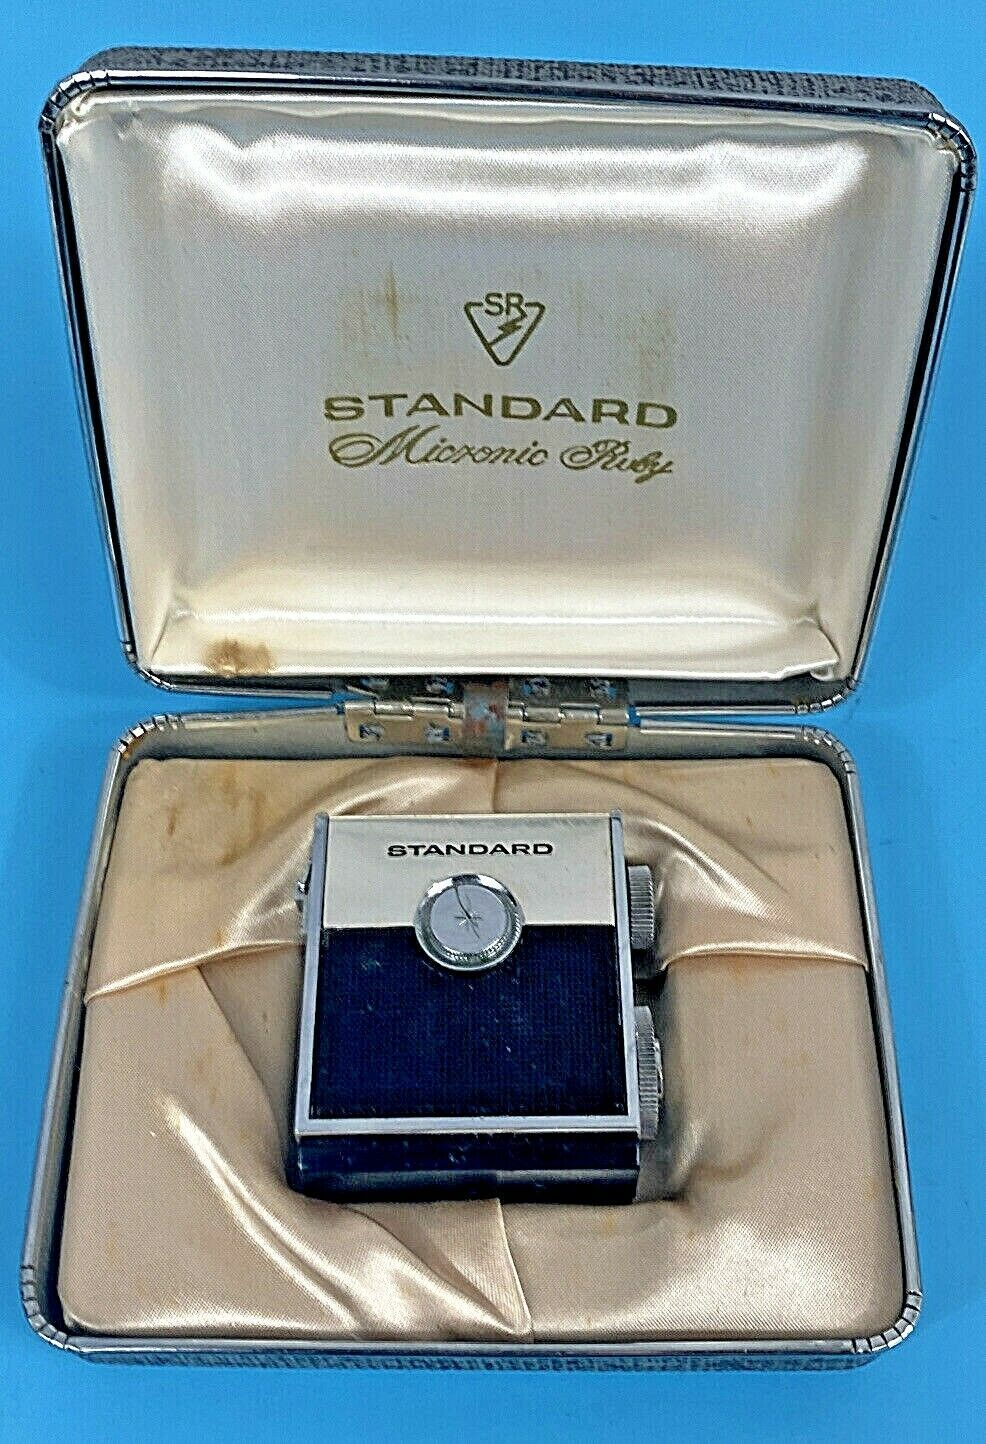 Primary image for Standard SR-H437 Micronic Ruby 8 Transistor AM Radio In Box Vintage RARE Unique